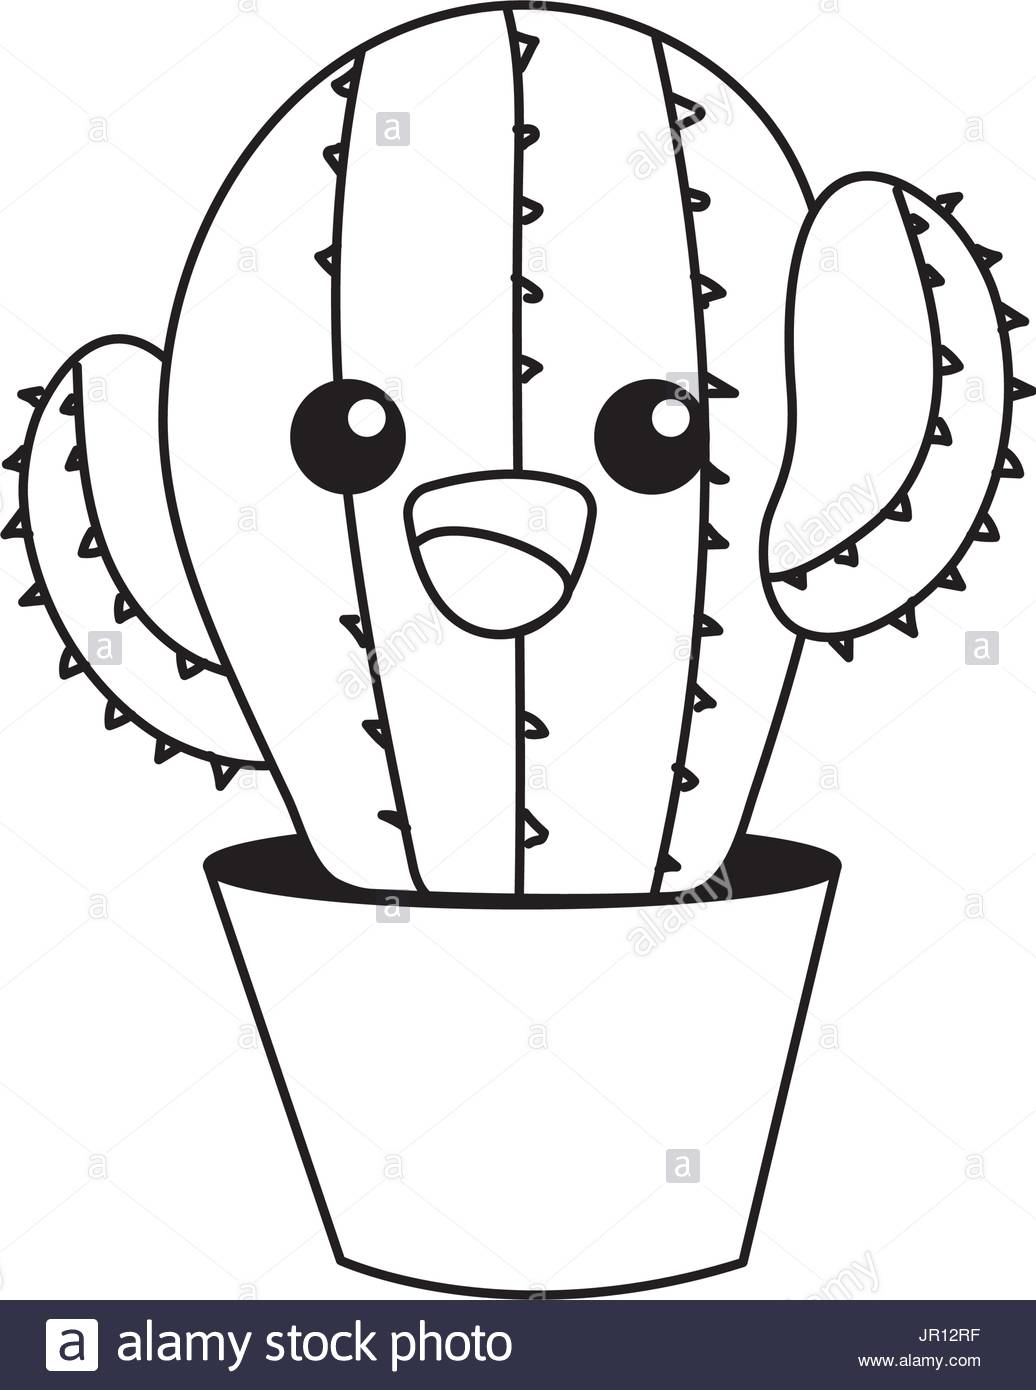 Cute Cactus Drawing at GetDrawings com | Free for personal use Cute